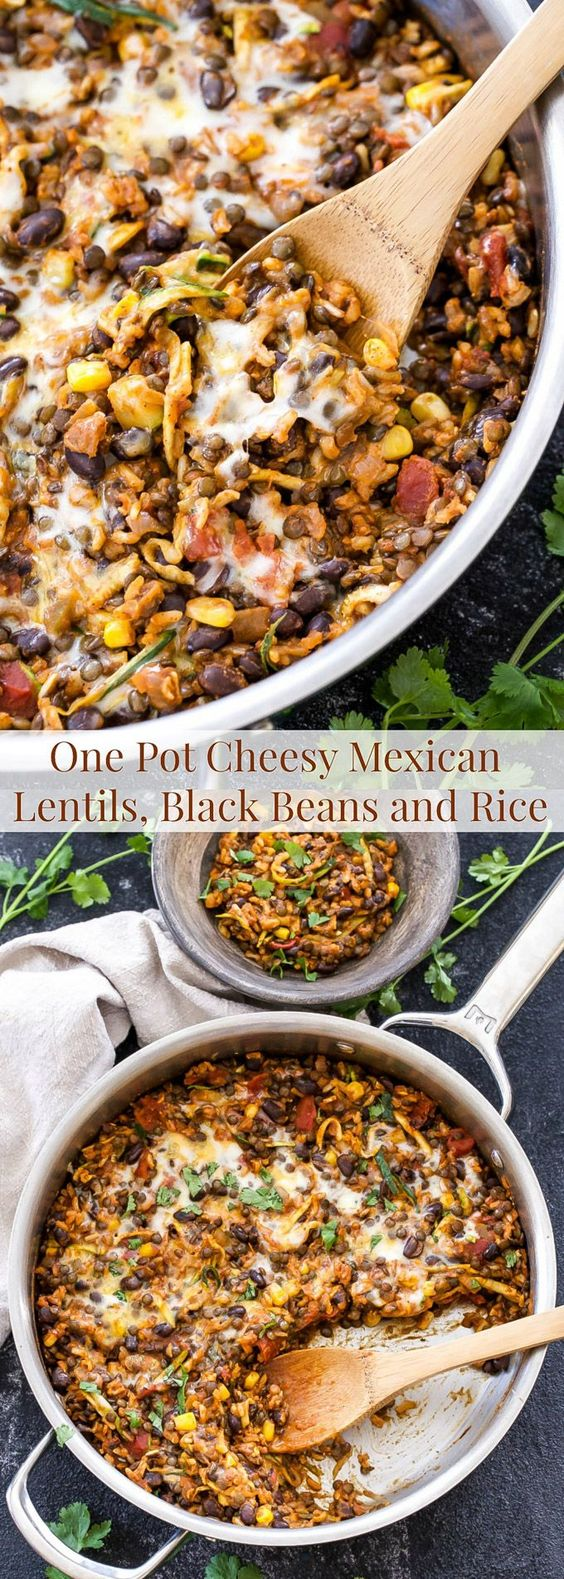 INGREDIENTS 1/2 of a yellow onion, diced 1 clove of garlic, grated or minced 1/2 cup uncooked long grain brown rice 1/2 cup uncooked French green lentils, rinsed (red or brown lentils may also be used) 2-3 cups low sodium vegetable stock 1 teaspoon chili powder 1/2 teaspoon ground cumin 1/4 teaspoon ground chipotle powder (optional) Kosher salt and fresh ground black pepper to taste 15 ounces black beans (canned), rinsed and drained 1/2 cup fire roasted tomatoes, drained 4 ounces diced green chiles (canned) 1 small zucchini, shredded 1/2 cup frozen corn, defrosted 1 cup red enchilada sauce 3/4 cup shredded cheese, I used sharp cheddar and part skim mozzarella Cilantro for garnish (optional) INSTRUCTIONS Heat a large pot or saucepan over medium high heat. When the pot is heated spray with cooking oil and add in the onion and garlic. Sauté for a couple minutes then add in the brown rice and lentils.